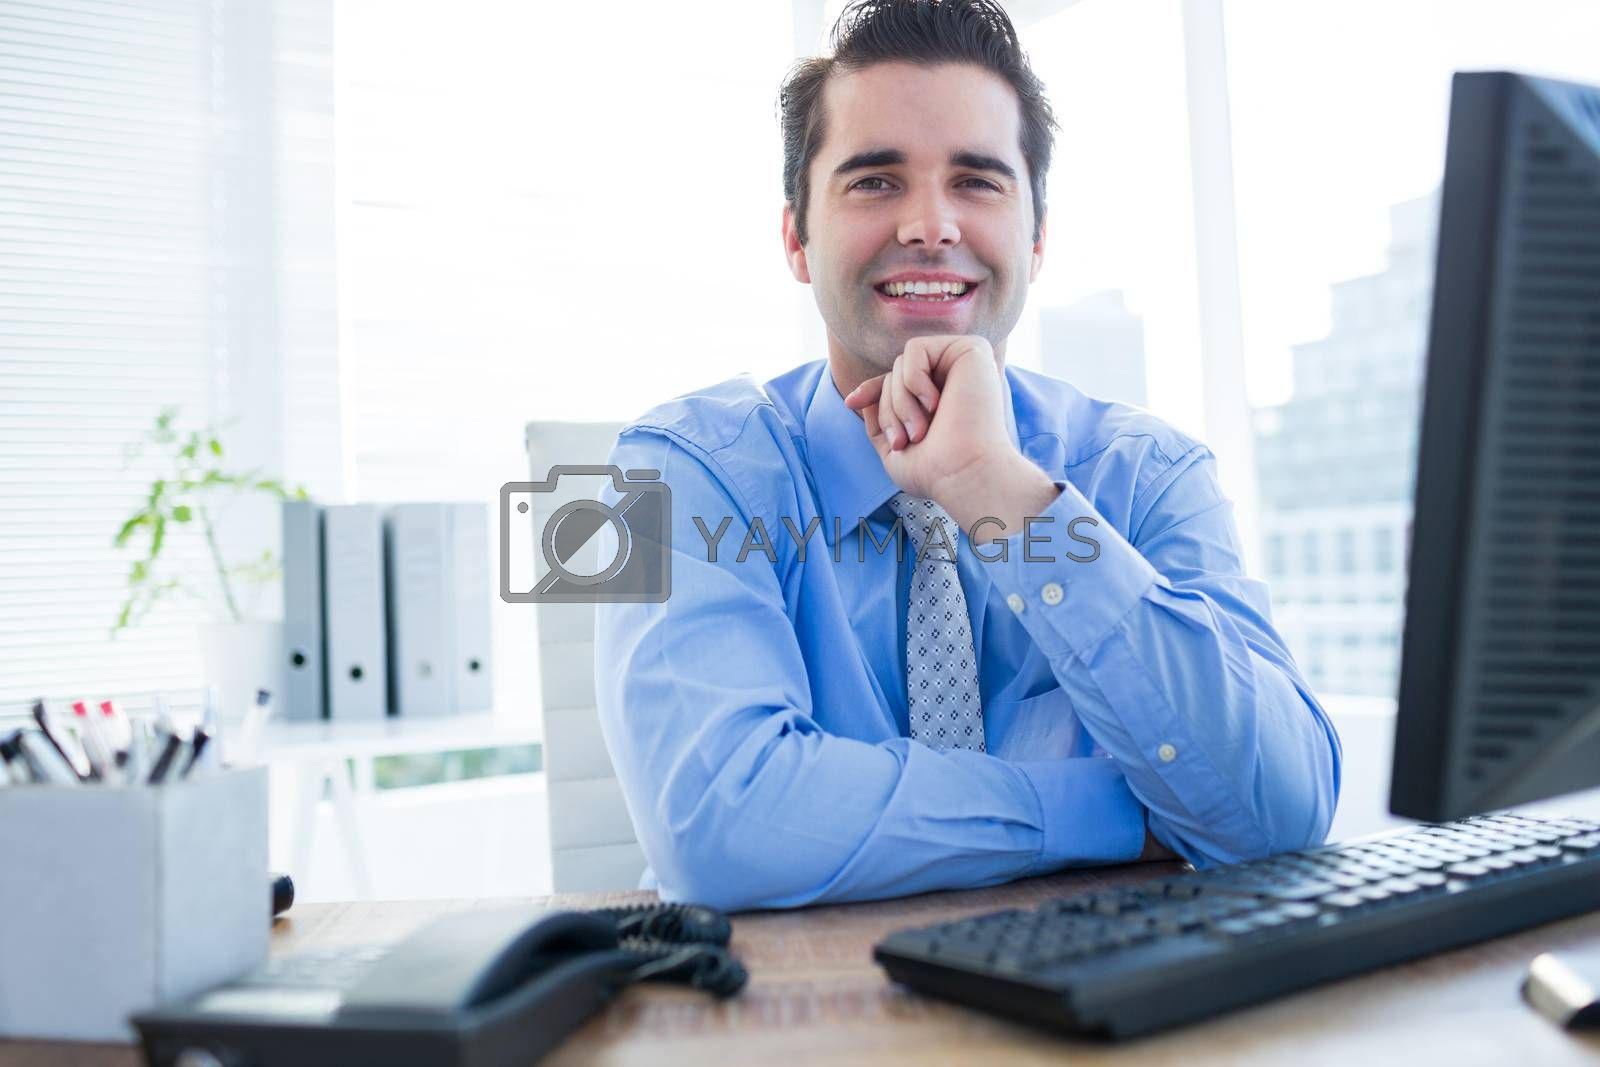 Royalty free image of Cheerful businessman using computer in office by Wavebreakmedia